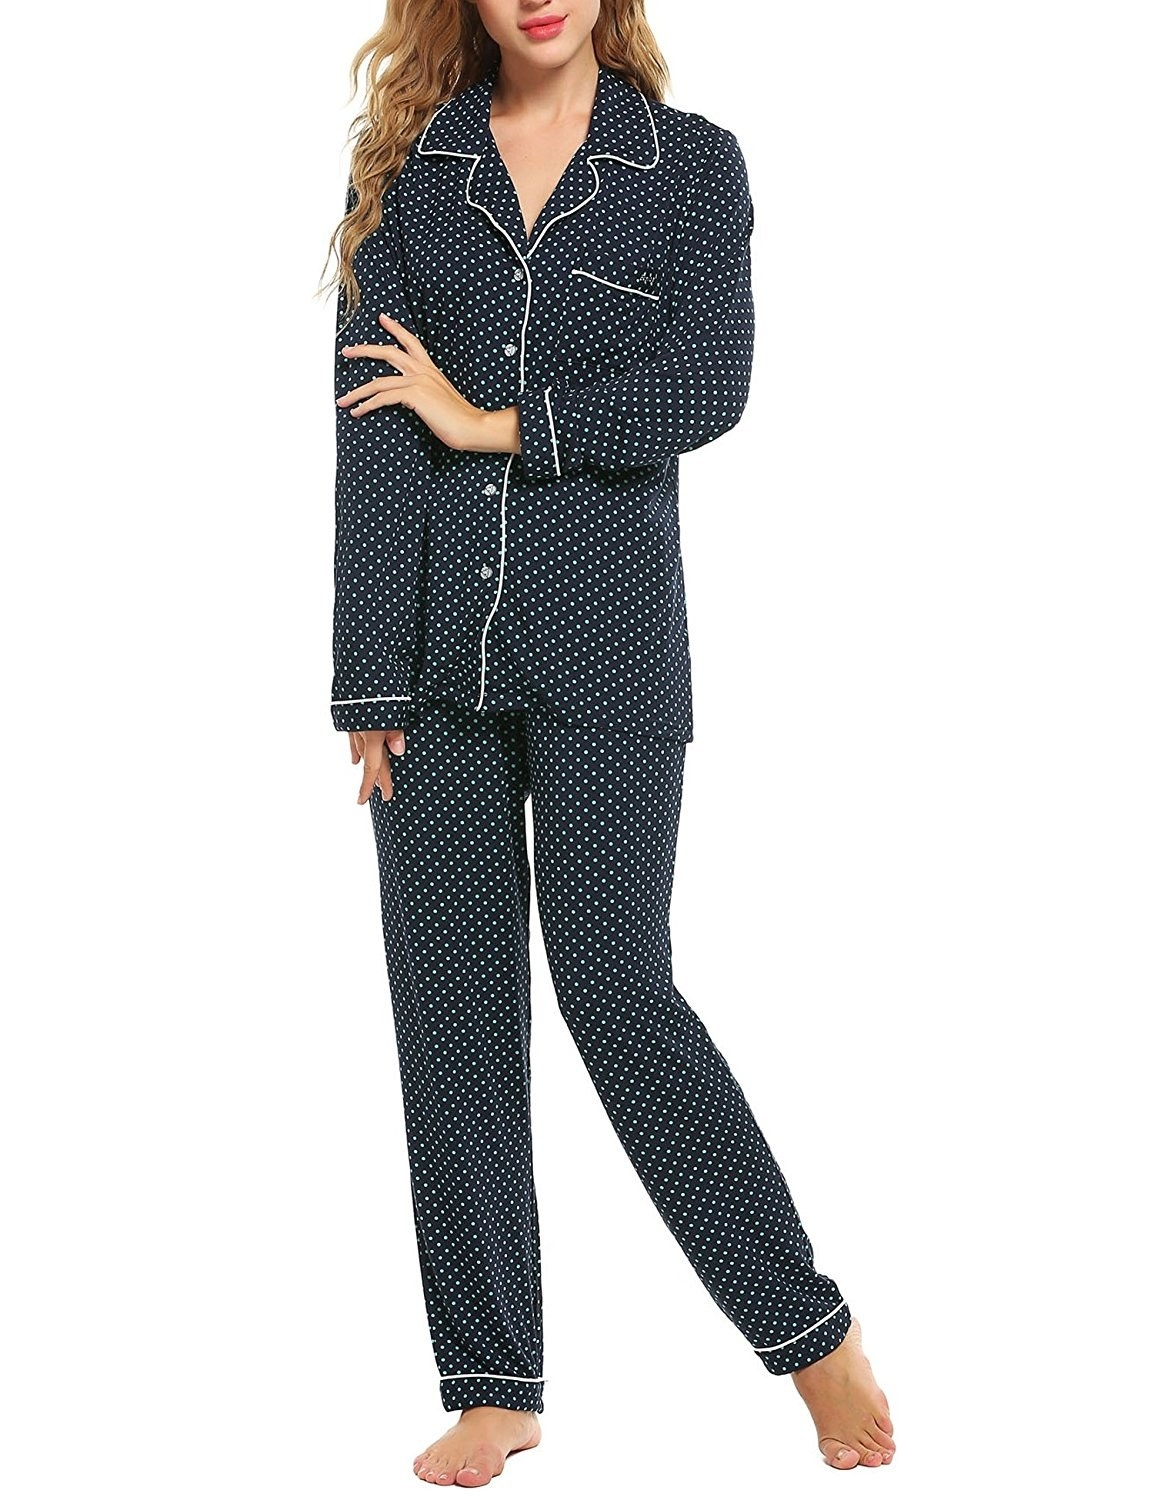 135626596a A pajama set you ll want to lounge around in all day. Getting out of bed   Who even does that anymore